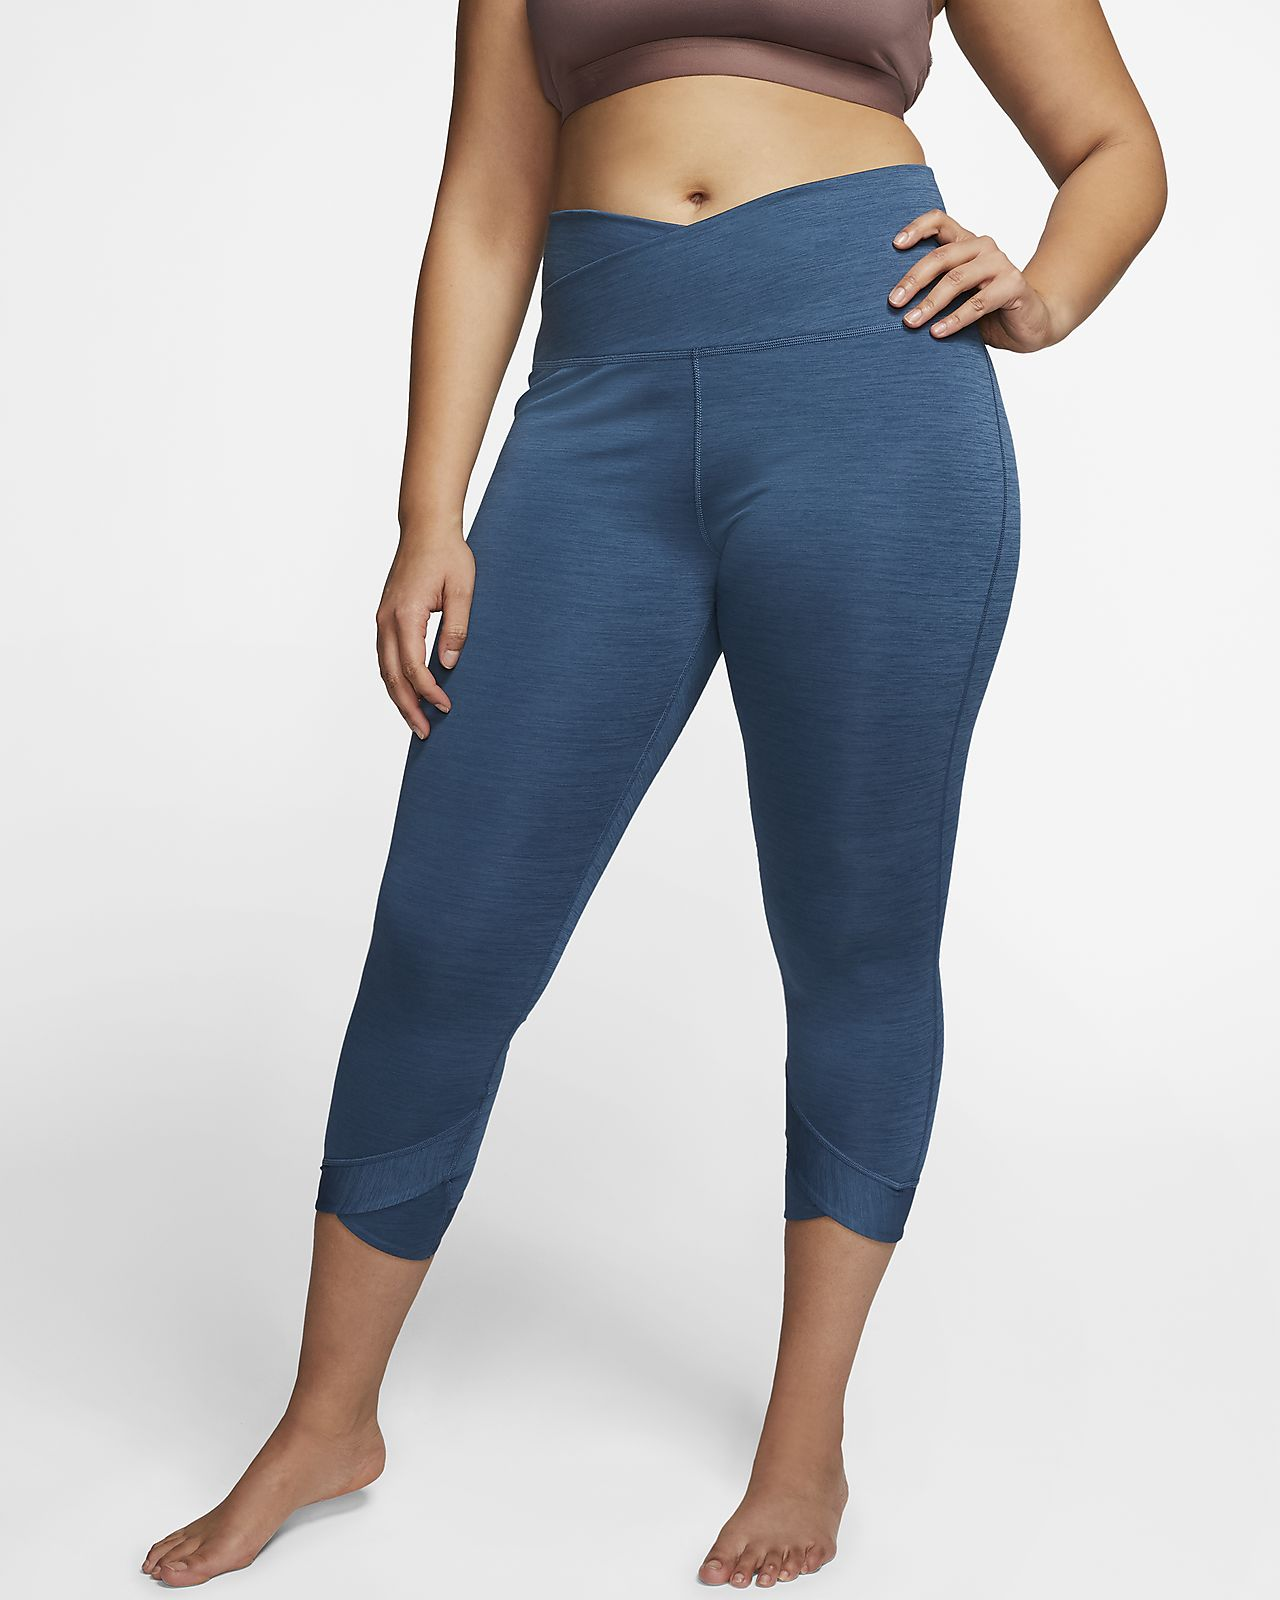 Nike Yoga Women's 7/8 Tights (Plus Size)